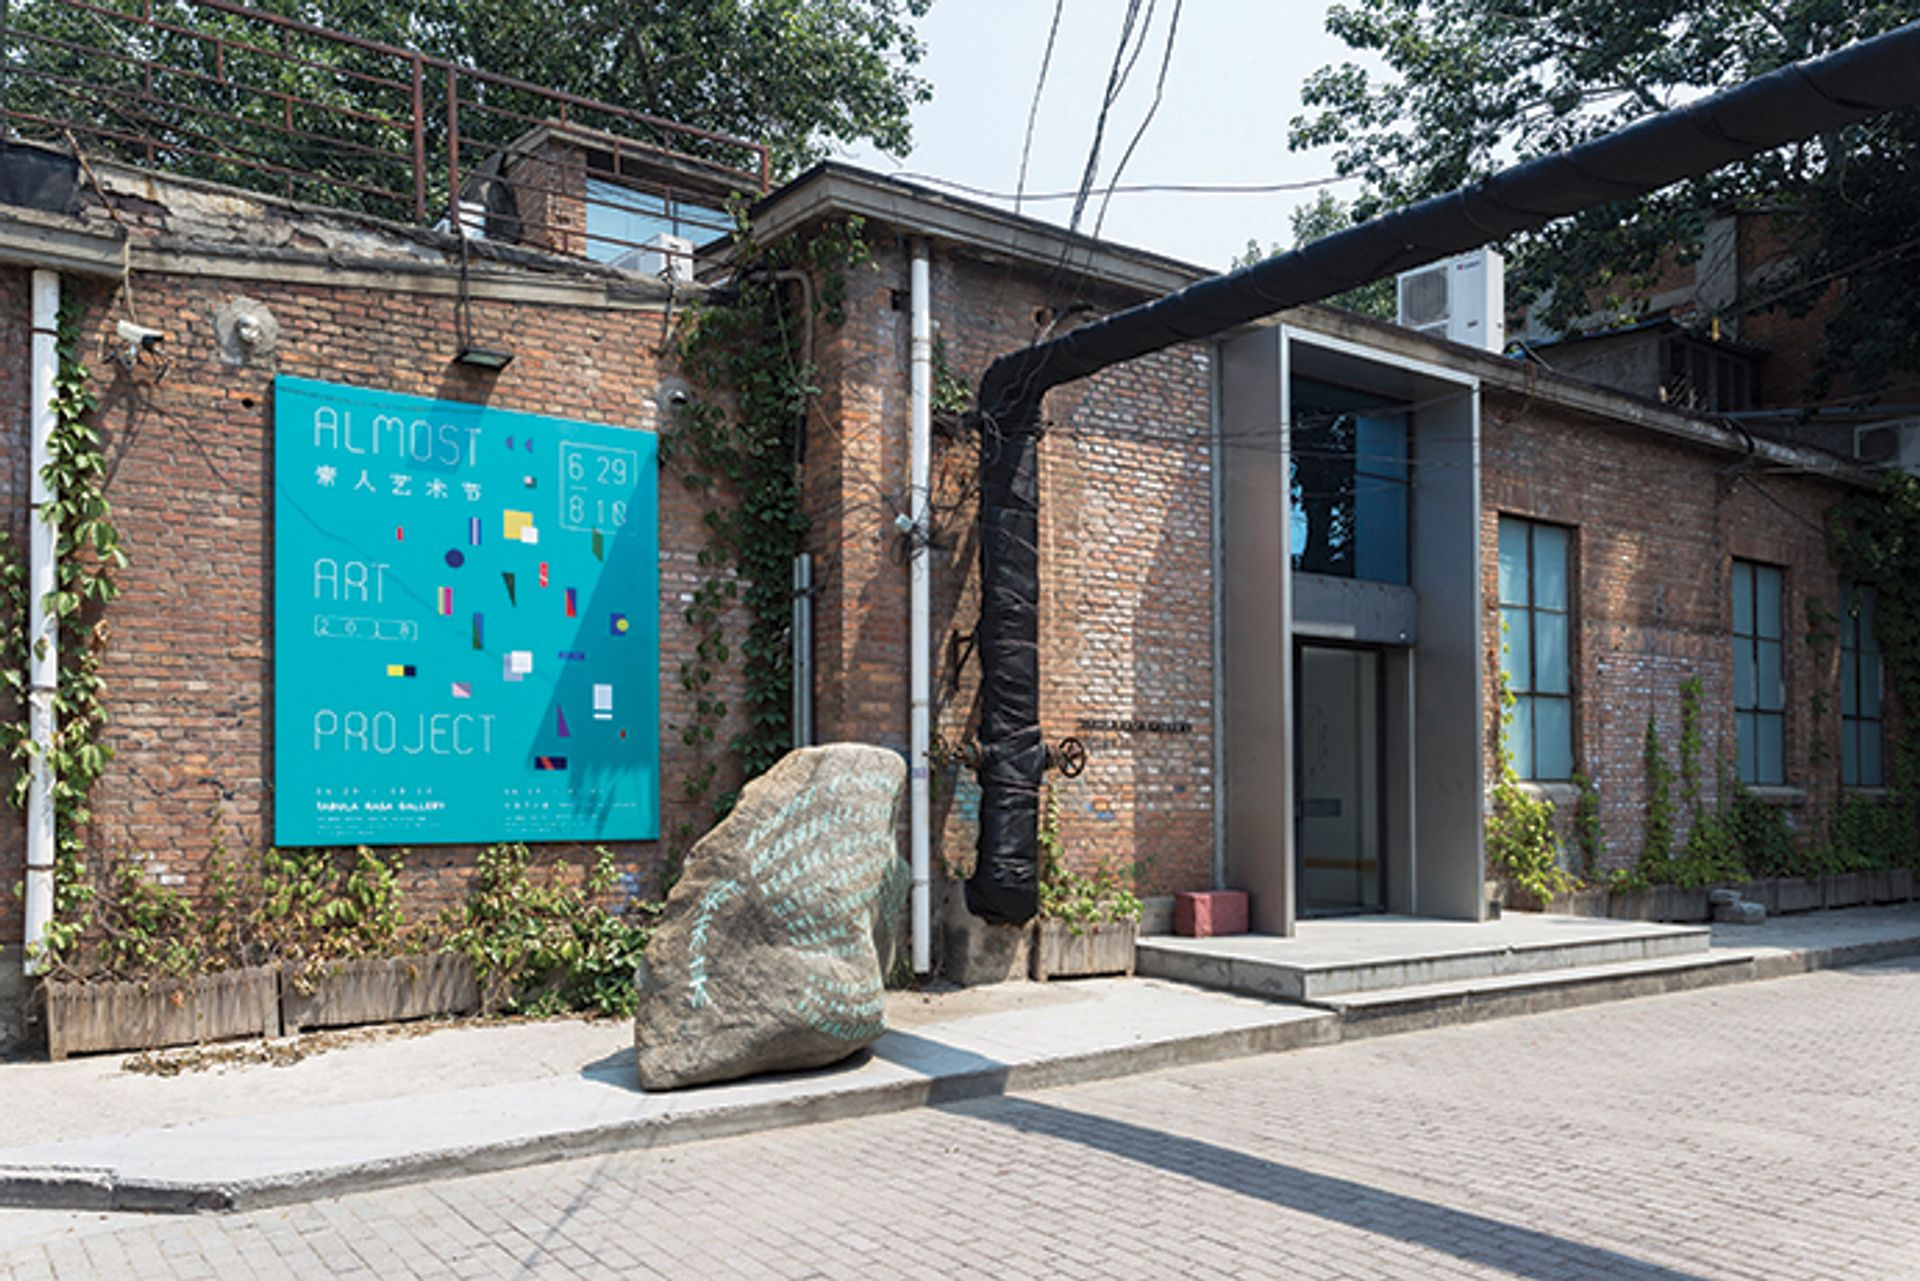 London-bound: Beijing gallery Tabula Rasa's founder launched the outsider art showcase Almost Art Project in 2015 Courtesy of Tabula Rasa